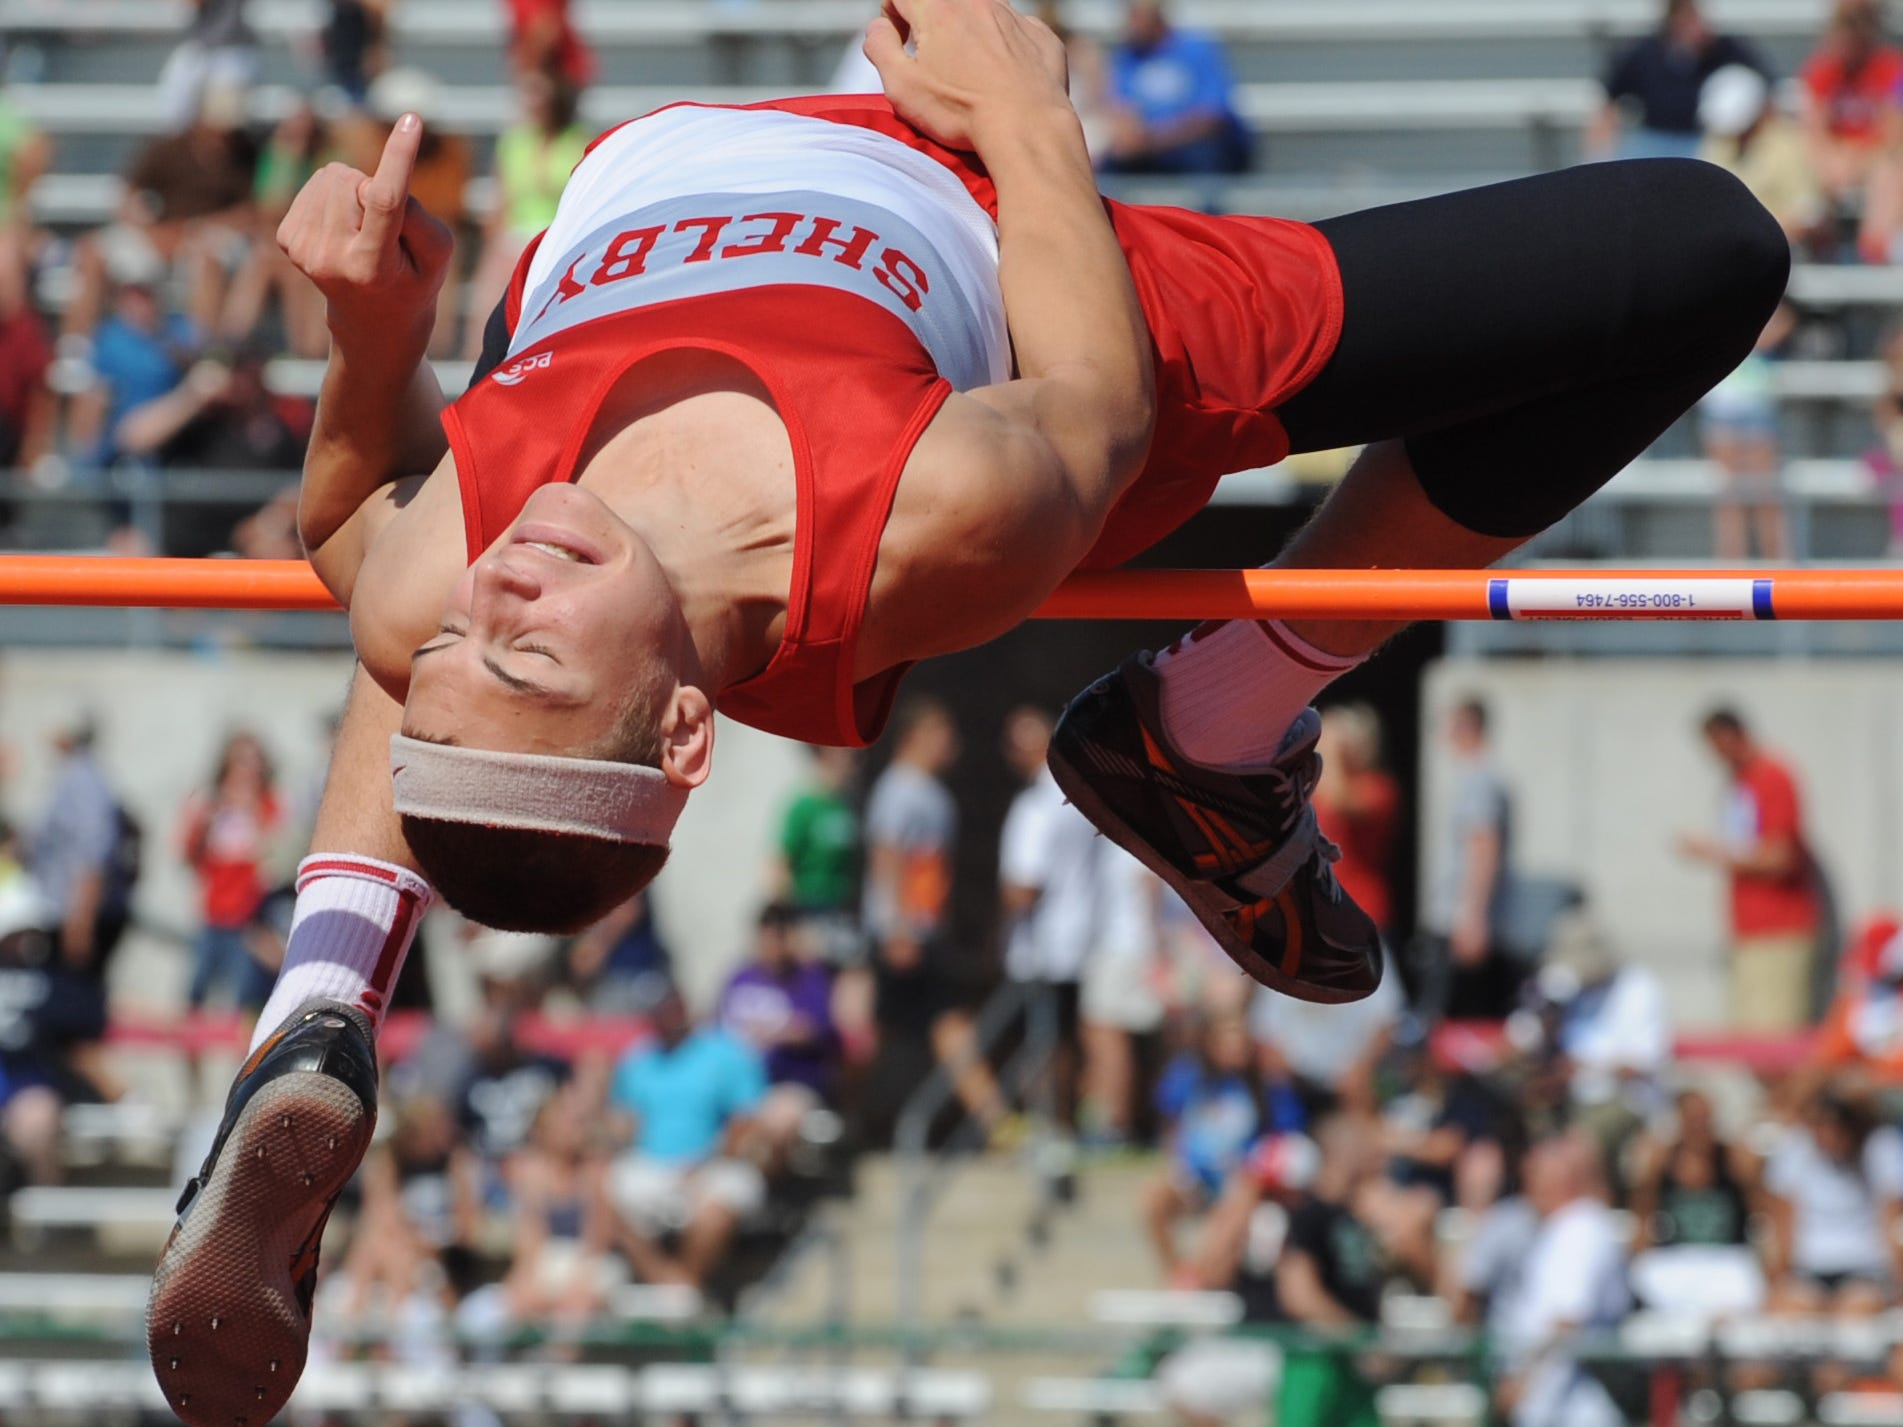 Shelby's Cody Stine is the reigning Division II-III state indoor champion and defending Mehock champ in the high jump.